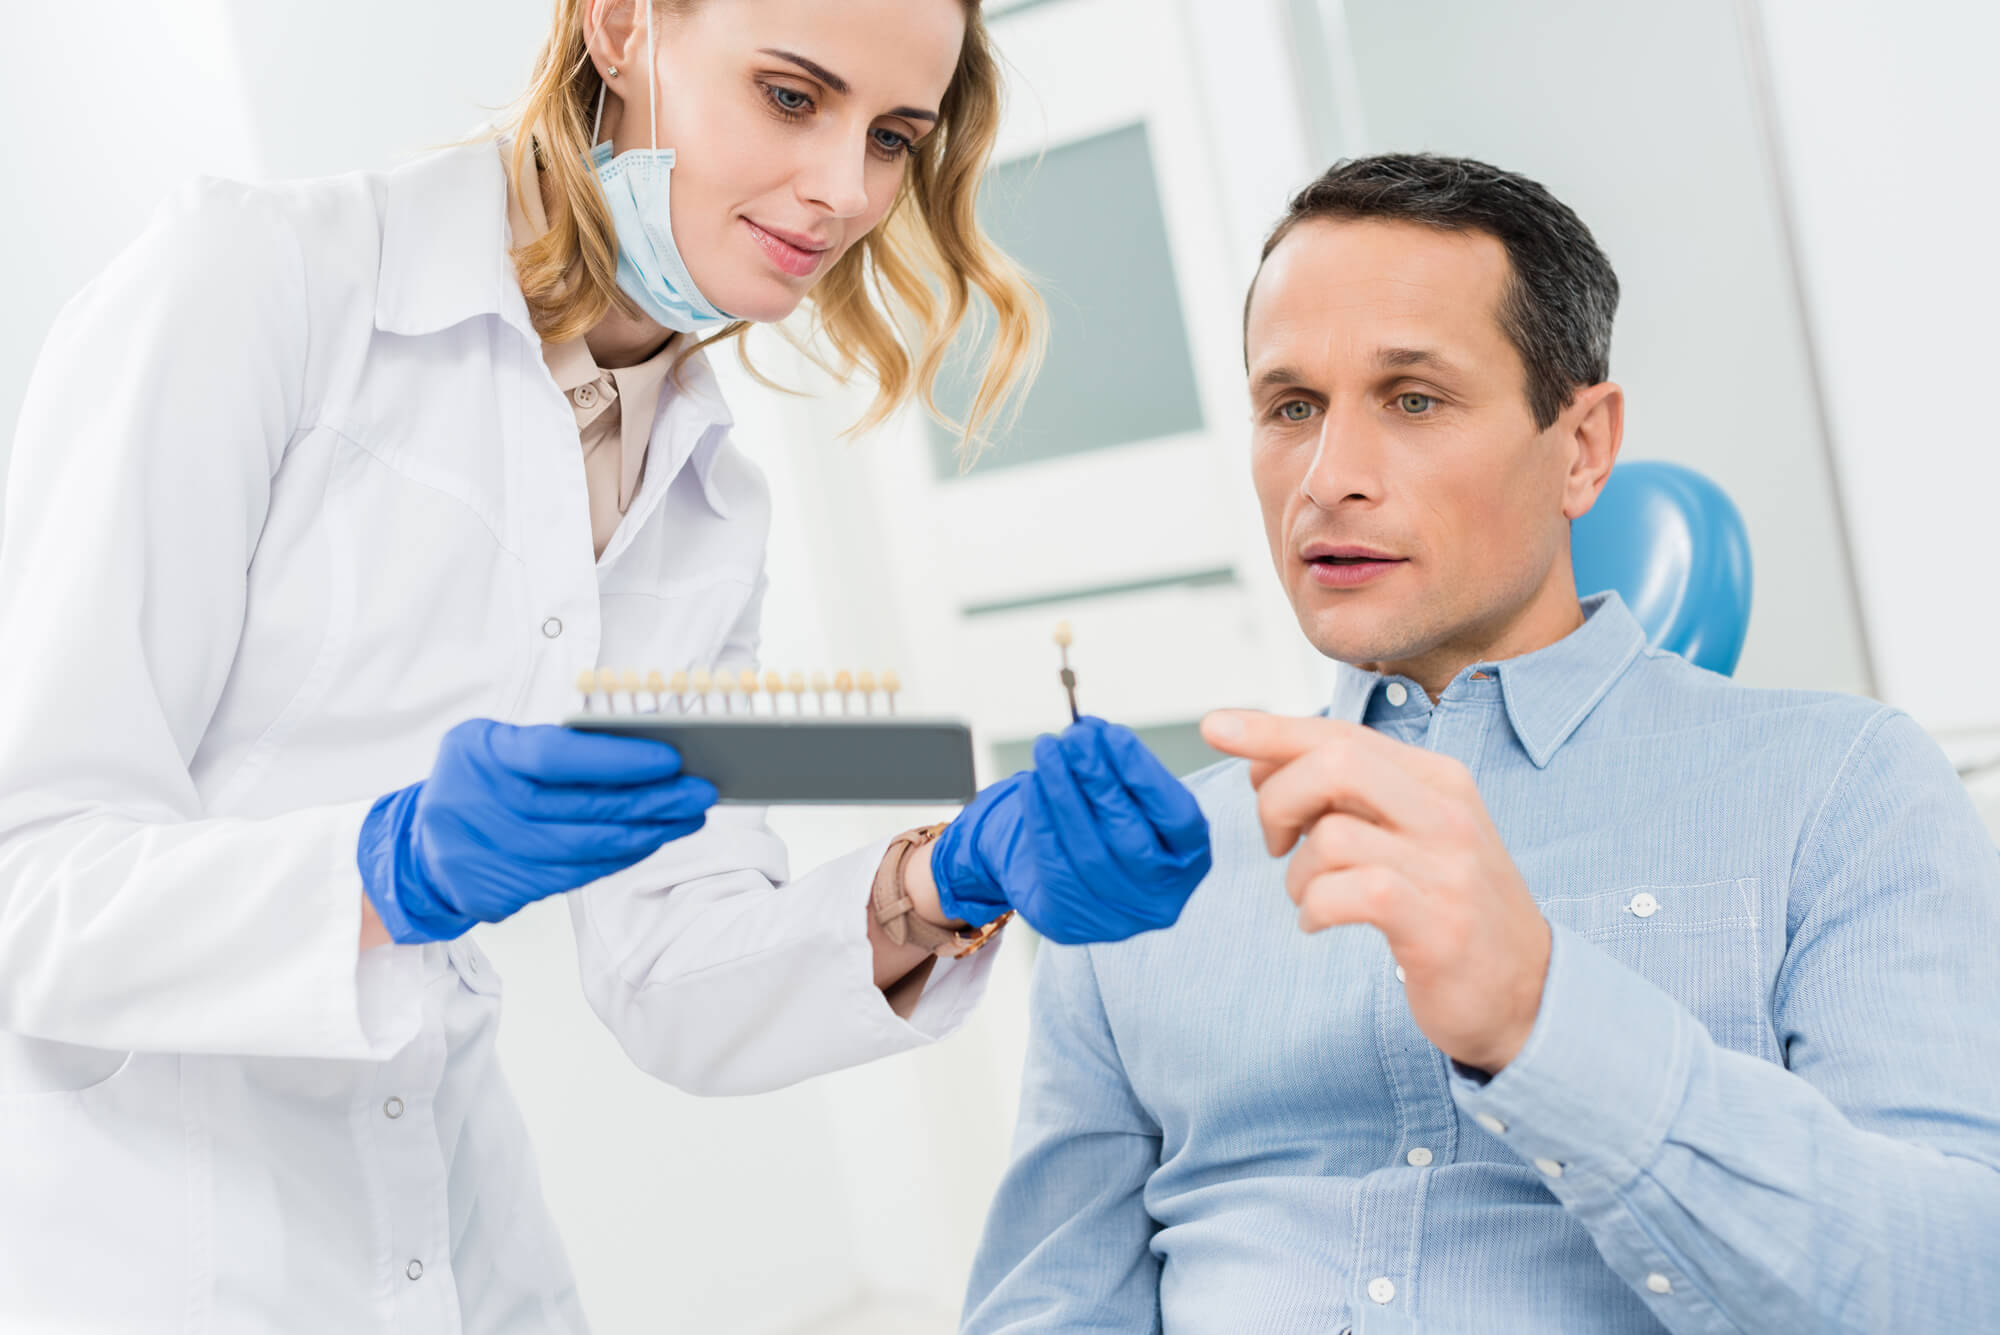 where can i get the best dental implants in plantation?